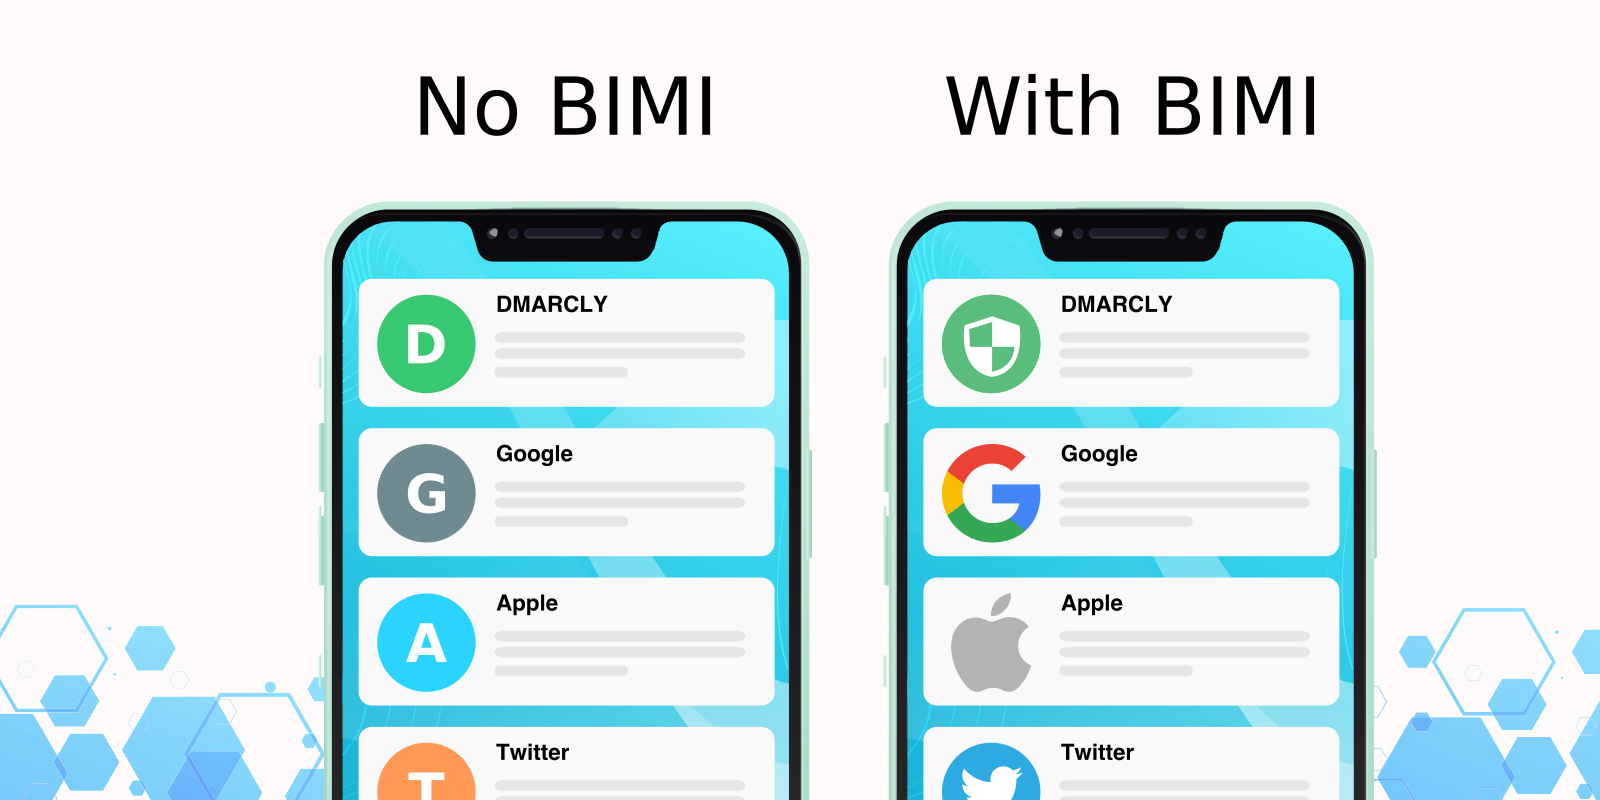 examples of emails with BIMI and without BIMI